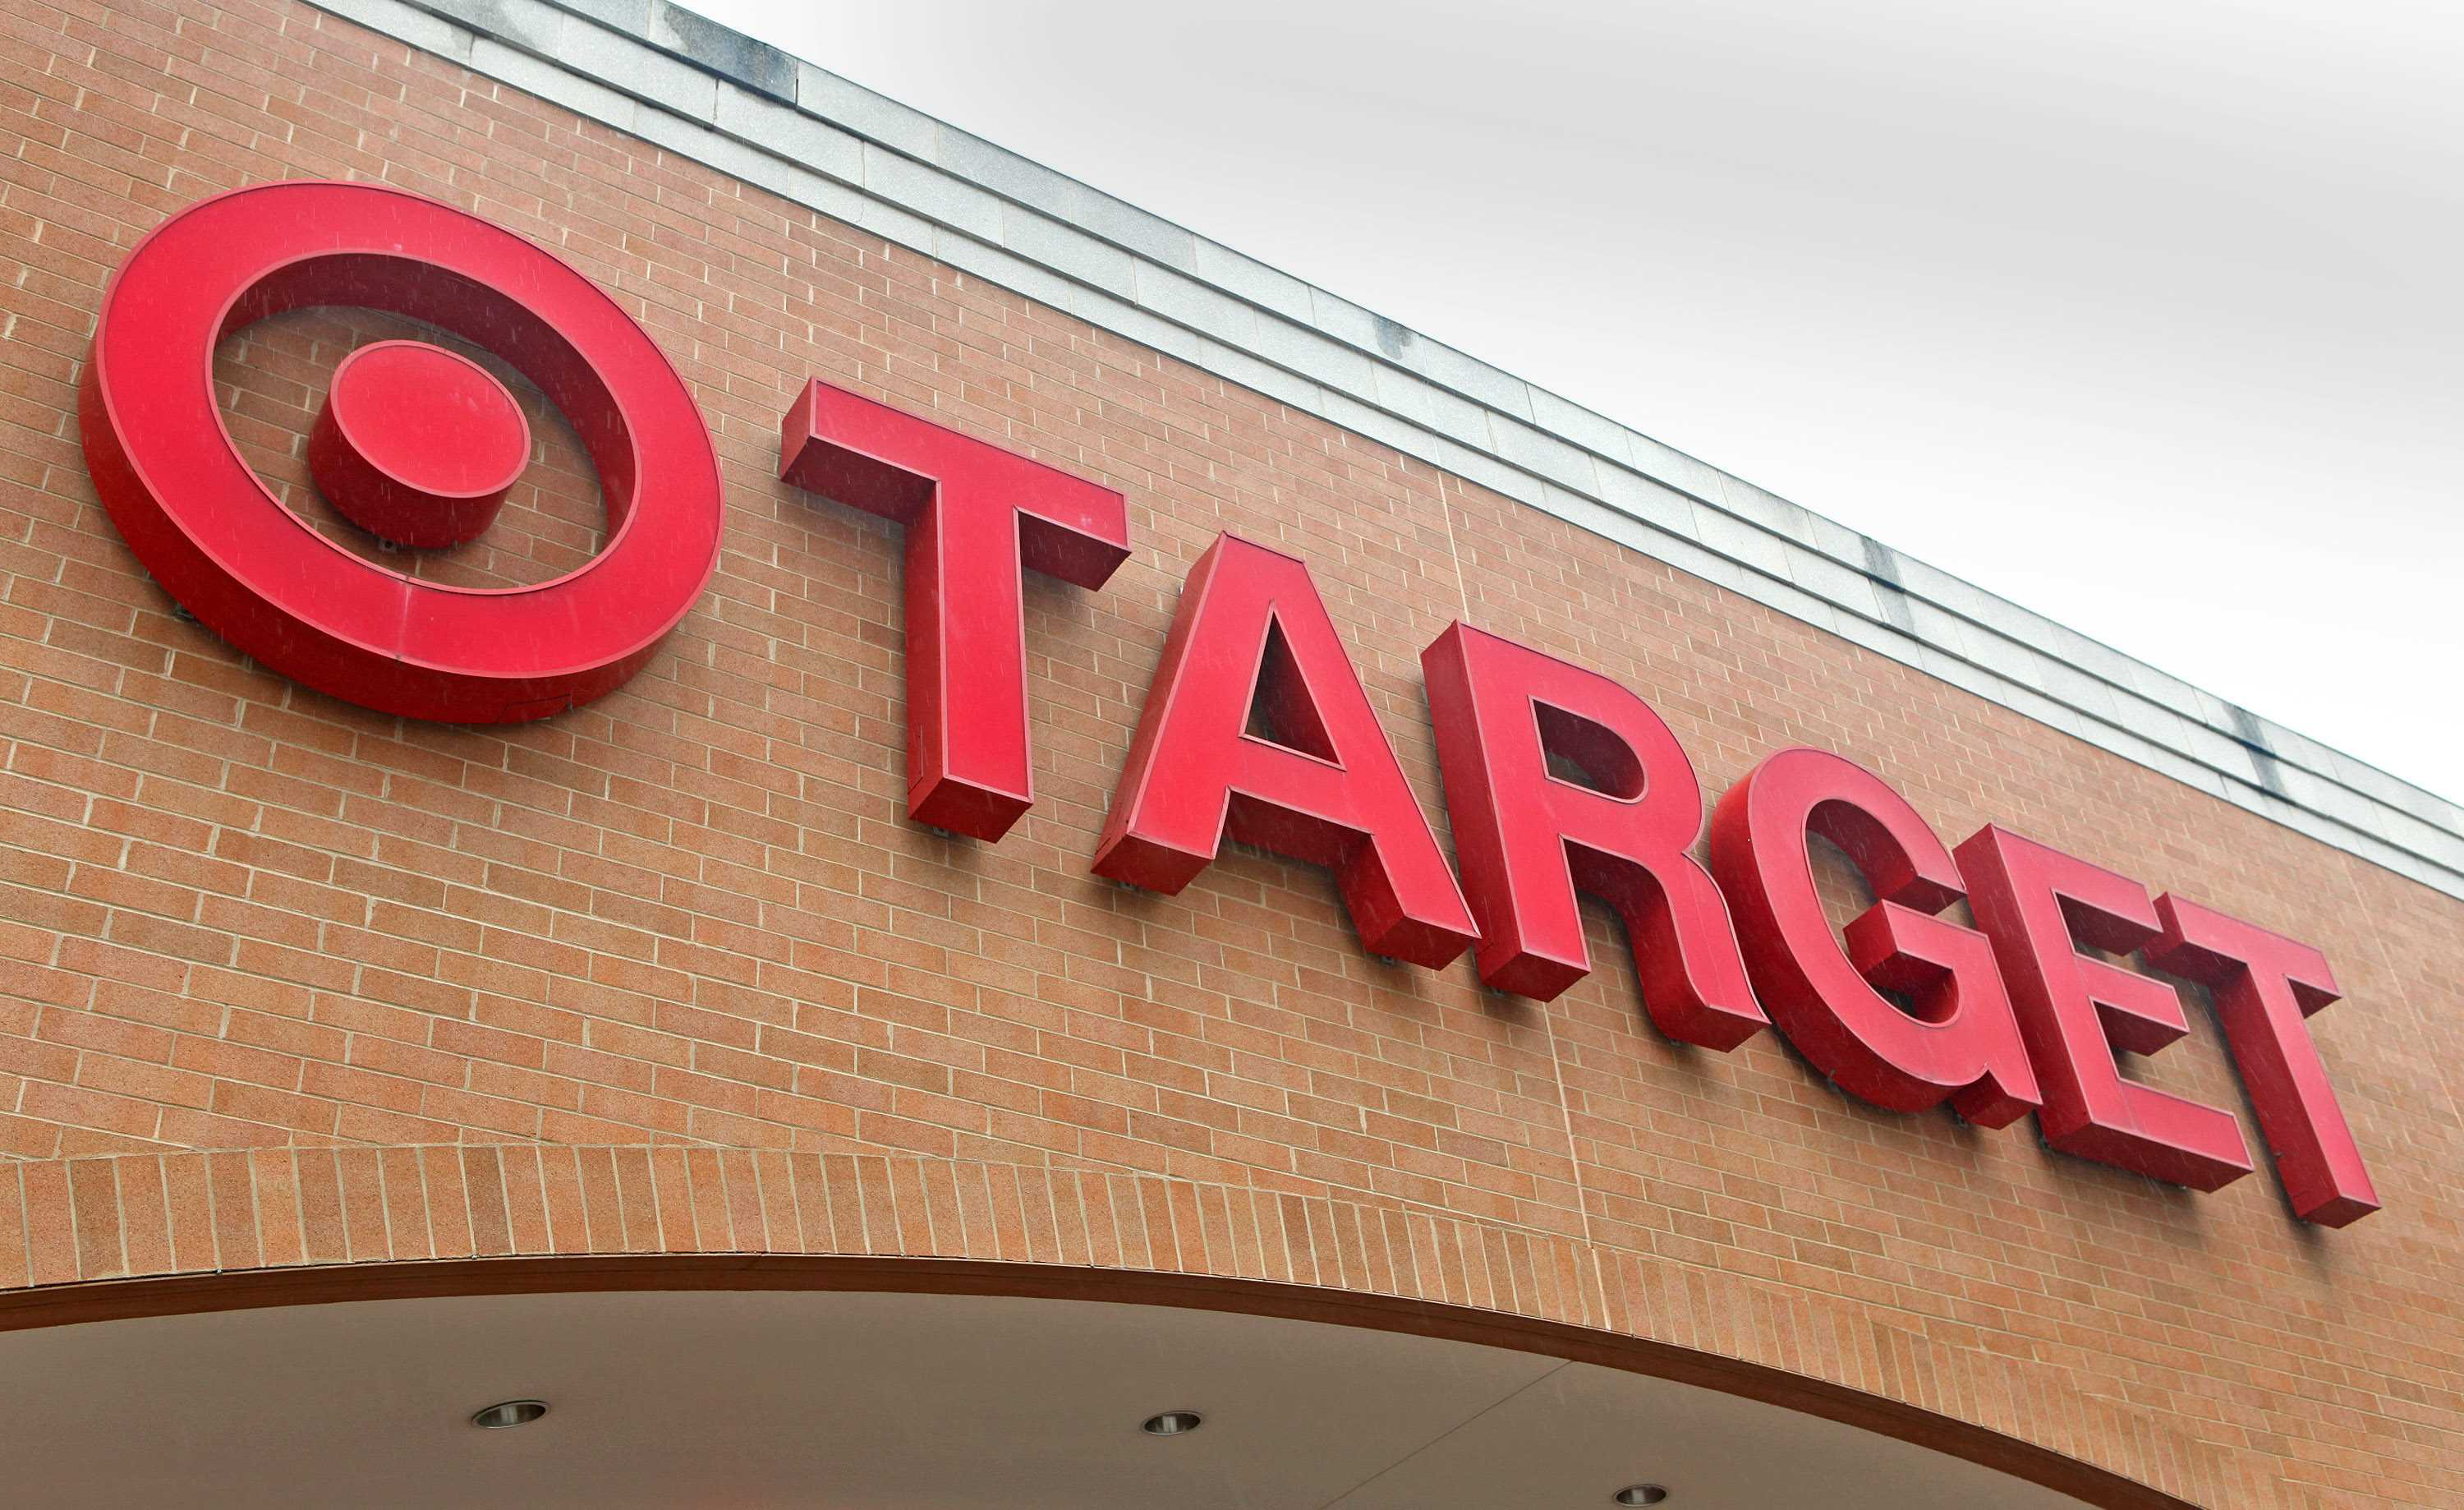 Target has $100 million of cyber insurance and $65 million of D&O coverage